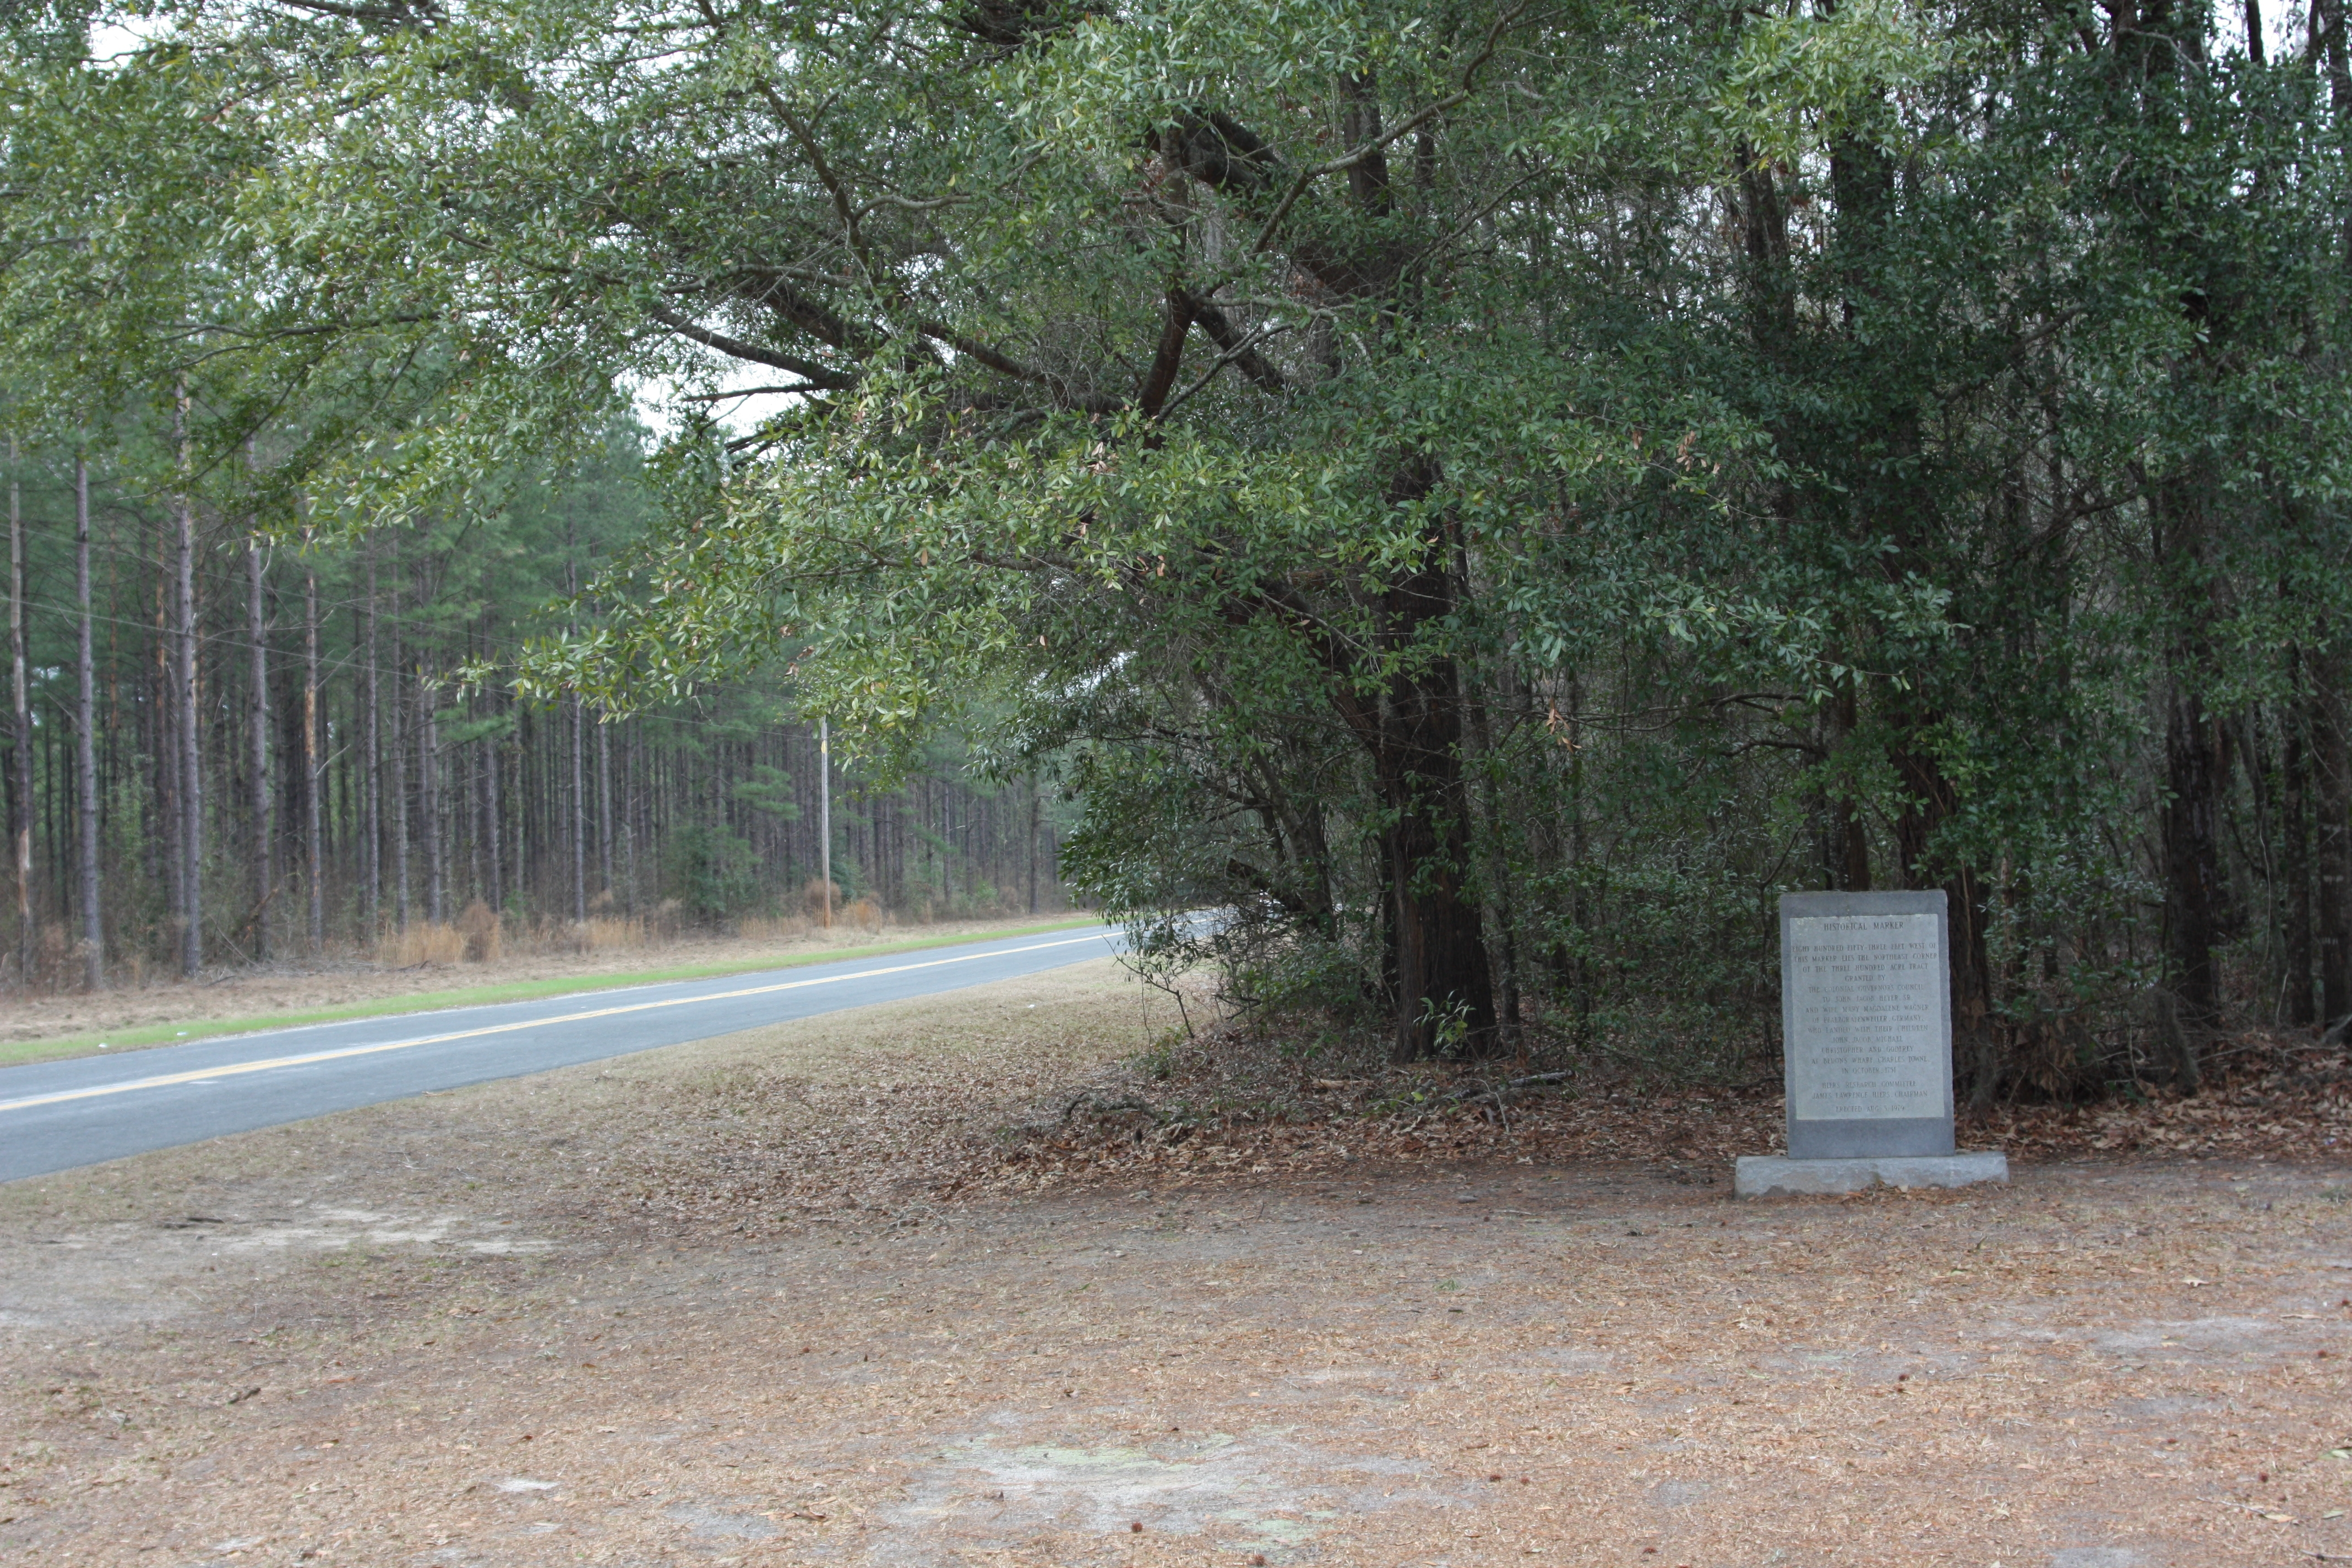 John Jacob Heyer Marker, seen along Confederate Hwy (SC 641), looking west